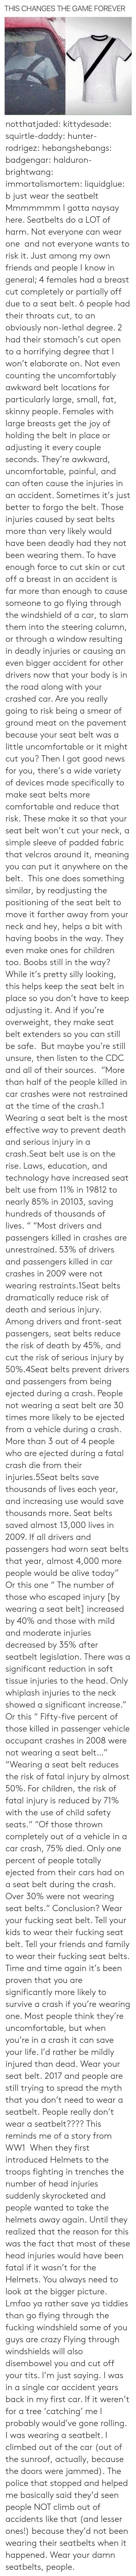 cdc: THIS CHANGES THE GAME FOREVER notthatjaded: kittydesade:  squirtle-daddy:  hunter-rodrigez:  hebangshebangs:  badgengar:  halduron-brightwang:  immortalismortem:  liquidglue:   b just wear the seatbelt   Mmmmmmm I gotta naysay here. Seatbelts do a LOT of harm. Not everyone can wear one and not everyone wants to risk it. Just among my own friends and people I know in general; 4 females had a breast cut completely or partially off due to a seat belt. 6 people had their throats cut, to an obviously non-lethal degree. 2 had their stomach's cut open to a horrifying degree that I won't elaborate on. Not even counting the uncomfortably awkward belt locations for particularly large, small, fat, skinny people. Females with large breasts get the joy of holding the belt in place or adjusting it every couple seconds. They're awkward, uncomfortable, painful, and can often cause the injuries in an accident. Sometimes it's just better to forgo the belt.  Those injuries caused by seat belts more than very likely would have been deadly had they not been wearing them. To have enough force to cut skin or cut off a breast in an accident is far more than enough to cause someone to go flying through the windshield of a car, to slam them into the steering column, or through a window resulting in deadly injuries or causing an even bigger accident for other drivers now that your body is in the road along with your crashed car. Are you really going to risk being a smear of ground meat on the pavement because your seat belt was a little uncomfortable or it might cut you? Then I got good news for you, there's a wide variety of devices made specifically to make seat belts more comfortable and reduce that risk. These make it so that your seat belt won't cut your neck, a simple sleeve of padded fabric that velcros around it, meaning you can put it anywhere on the belt. This one does something similar, by readjusting the positioning of the seat belt to move it farther away from your neck and 